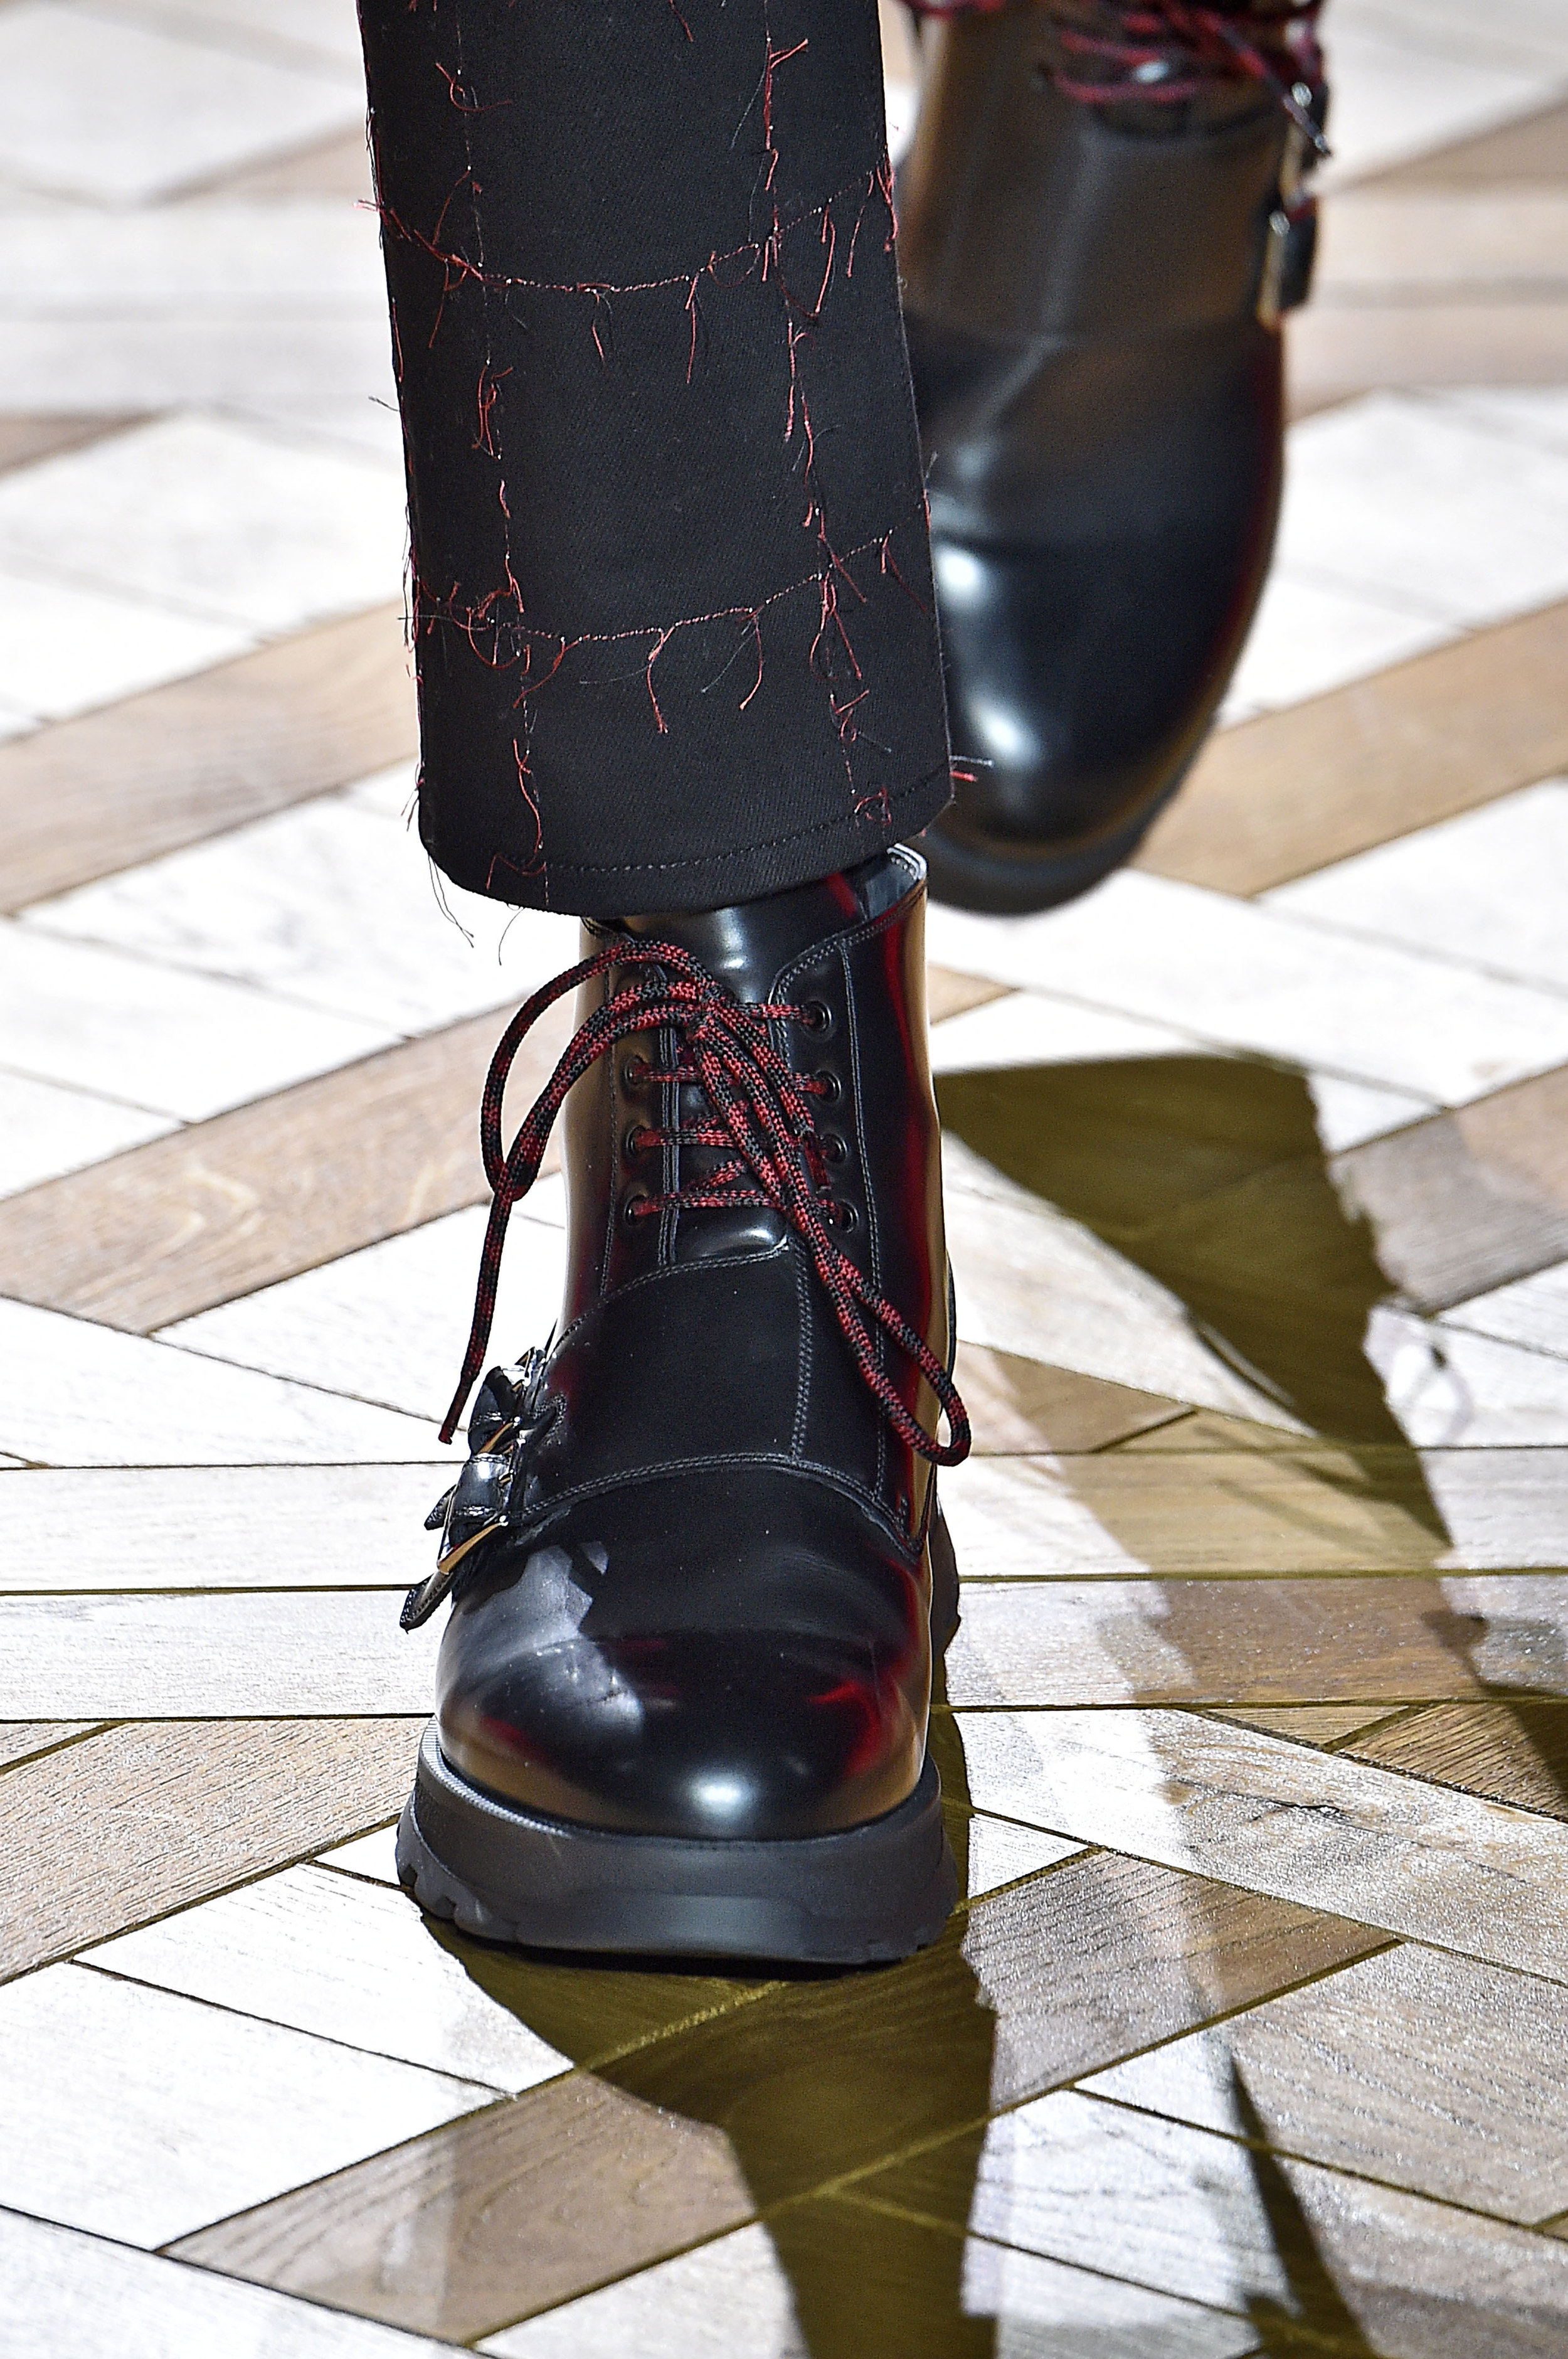 Heavy, leather military boots against the geometric, light hardwood floors bring textures and styles together to a whole new level.Photo: Architectural Digest